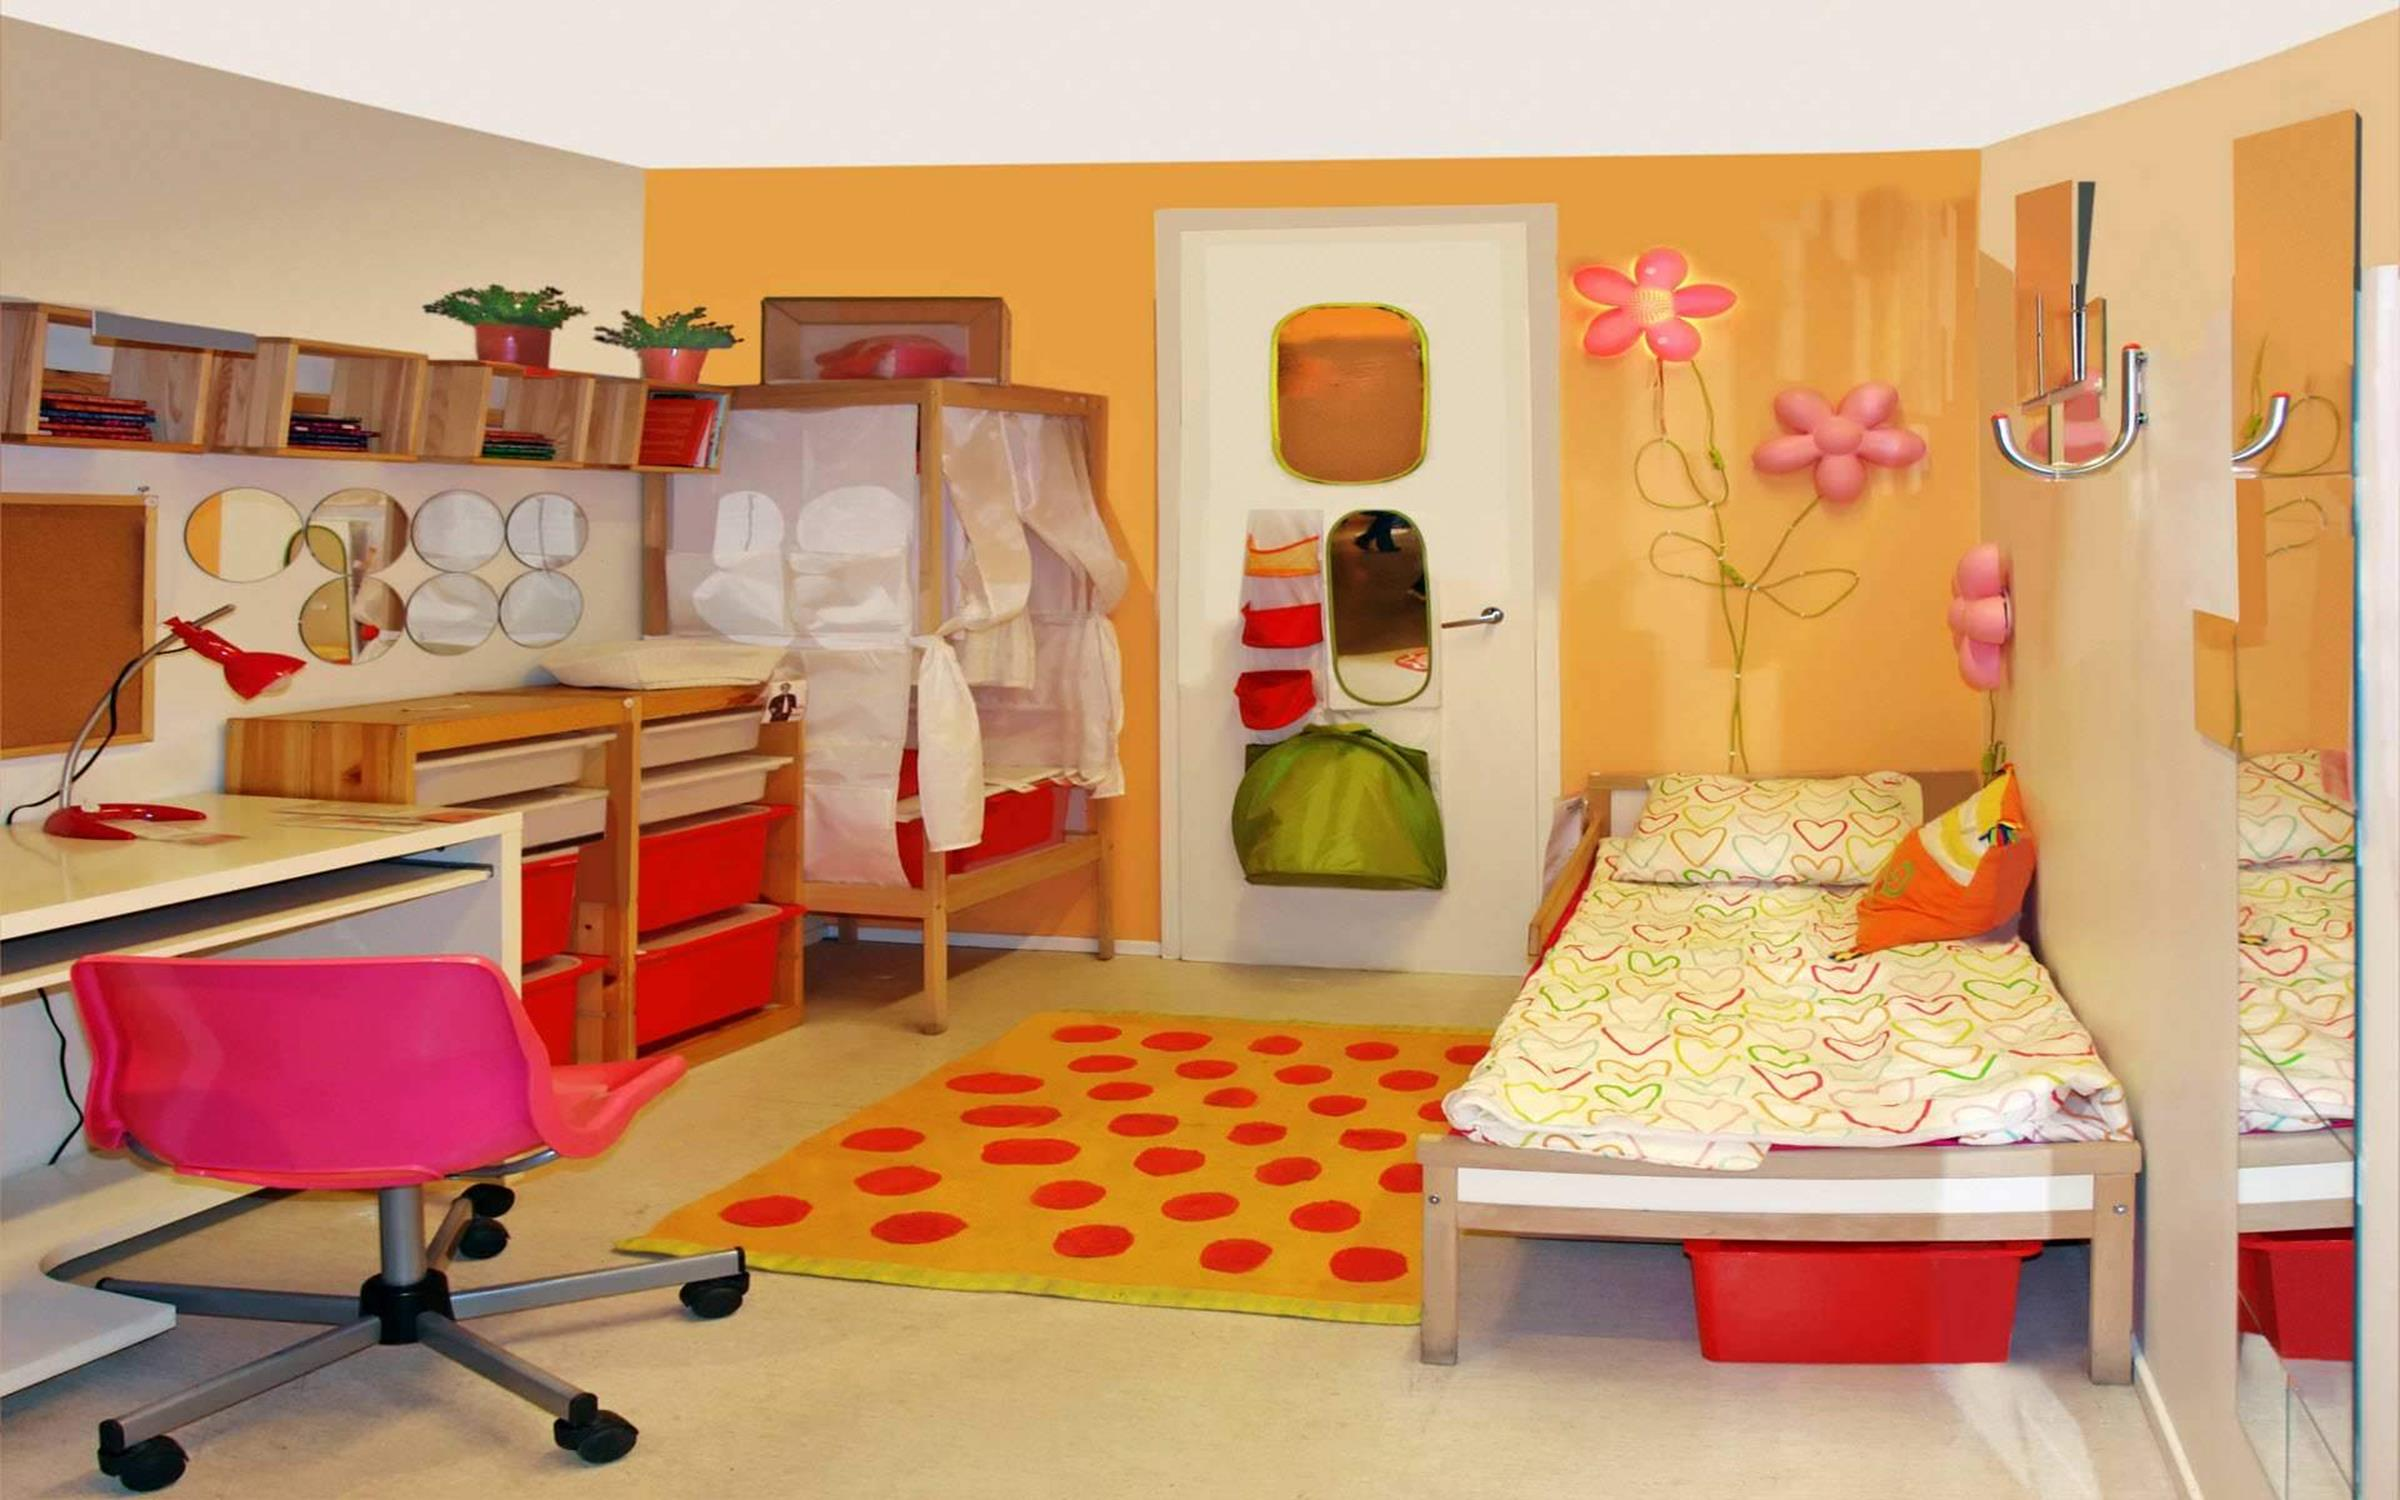 Color Full Kids Room Decorating Ideas On A Budget 33